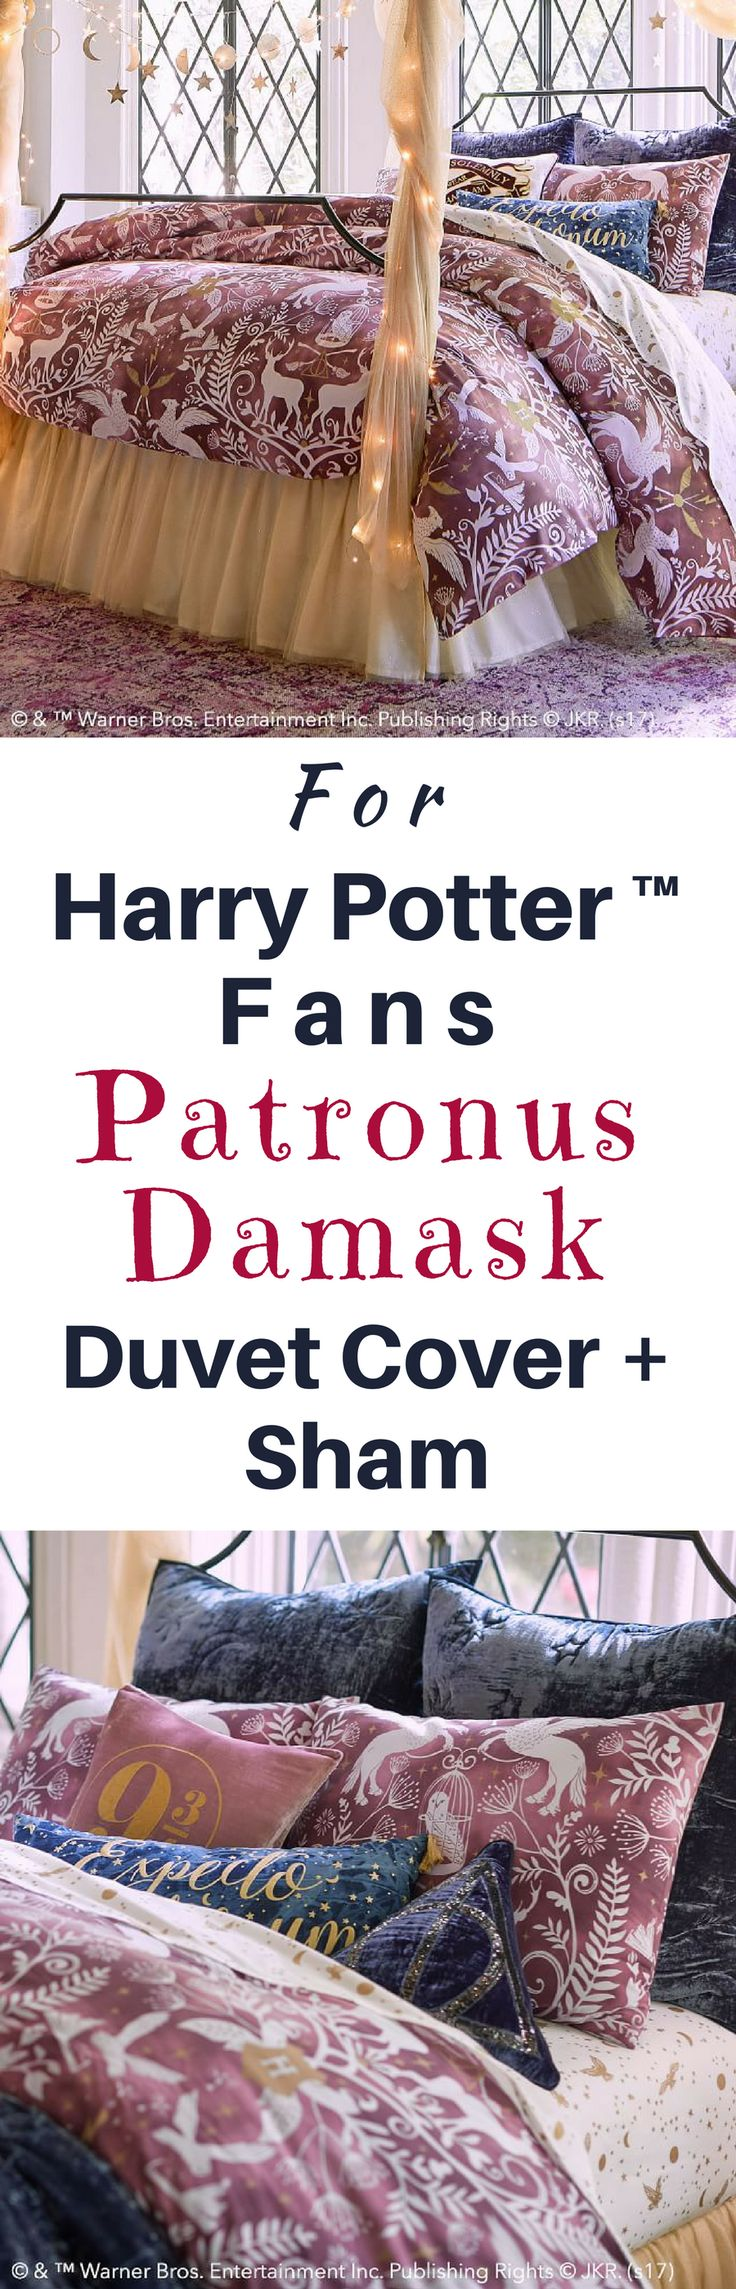 This is awesome Harry Potter Patronus Damask Duvet Cover + Sham! I love it! Great gift idea for Harry Potter fans! NNT #afflink #Harrypotter #harrypotterfan #quilting #harrypotterforever #bestseller #giftideas #GIFTIDEA #gift #christmasgifts #christmas harry potter | harry potter tattoo | harry potter funny | harry potter party | harry potter costume | Harry Potter Film | Harry Potter | Harry Potter Hub | Harry Potter | Harry Potter...Always | ⚡Harry Potter⚡ | harry potter bedding | Harry…